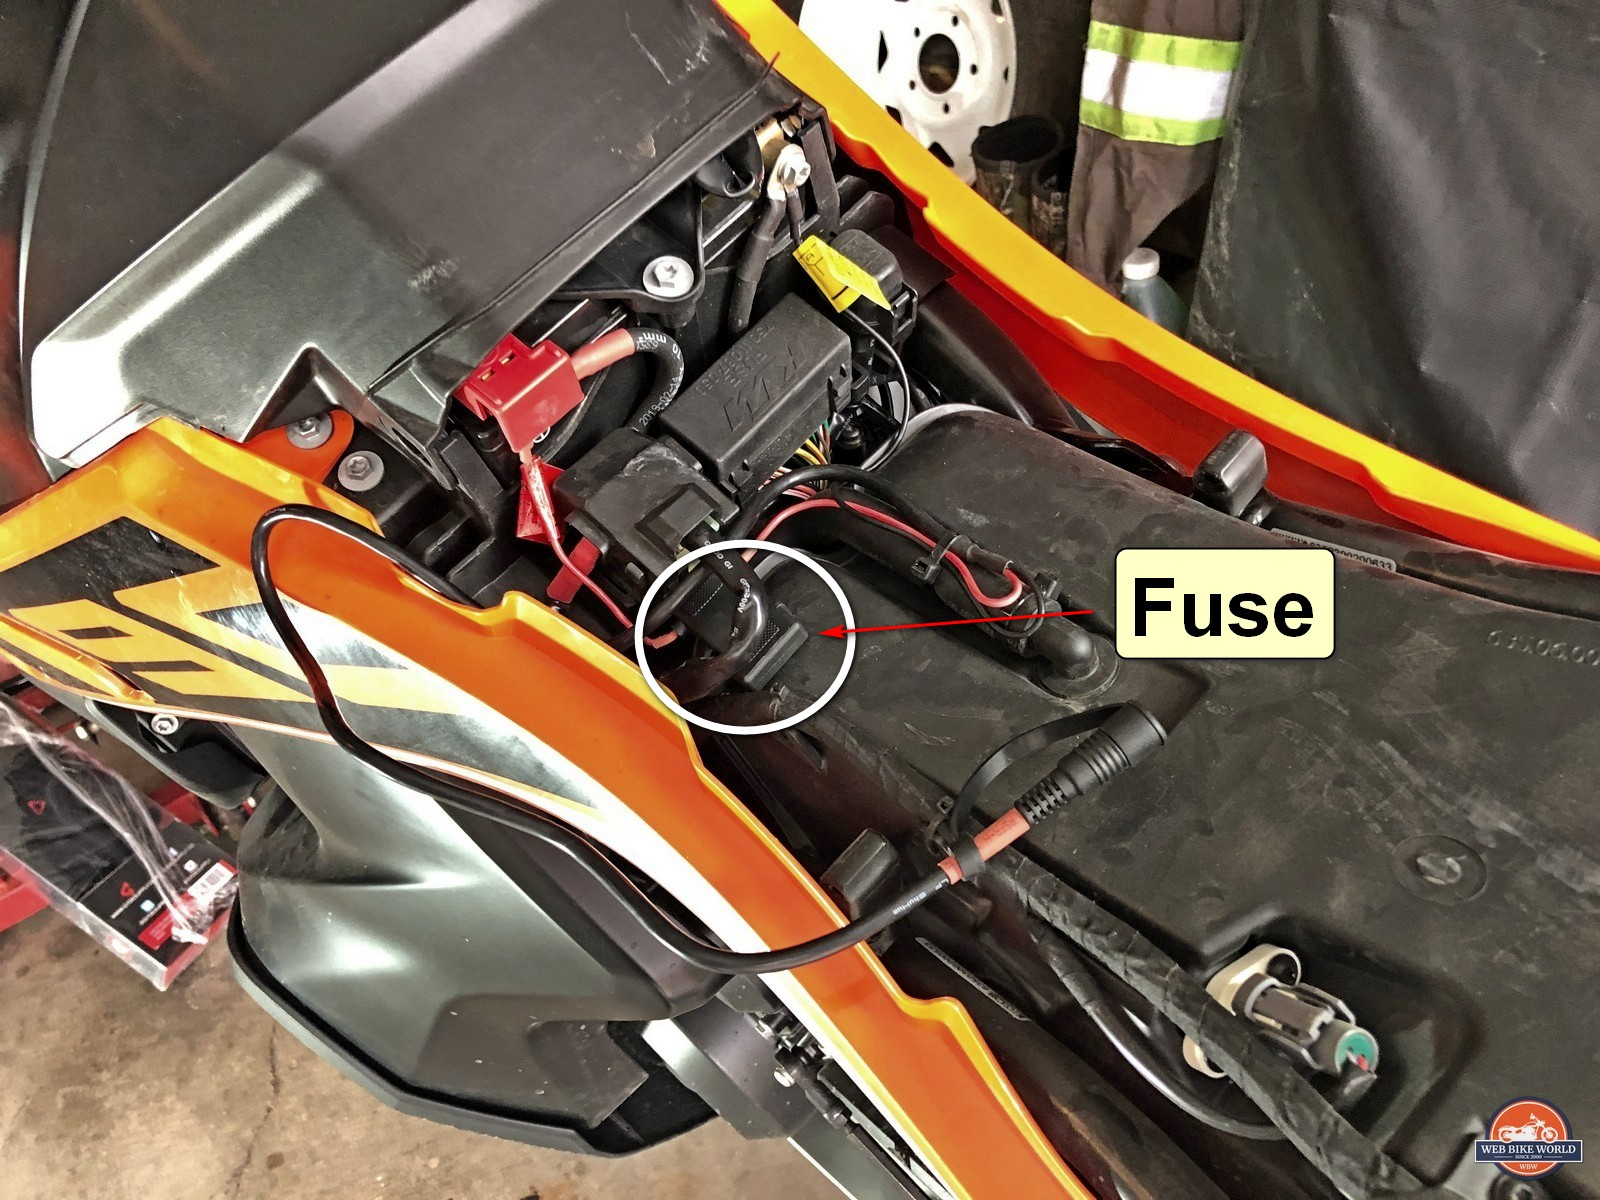 Close up showing the inline fuse holder in the power harness for the Gerbing heated vest.